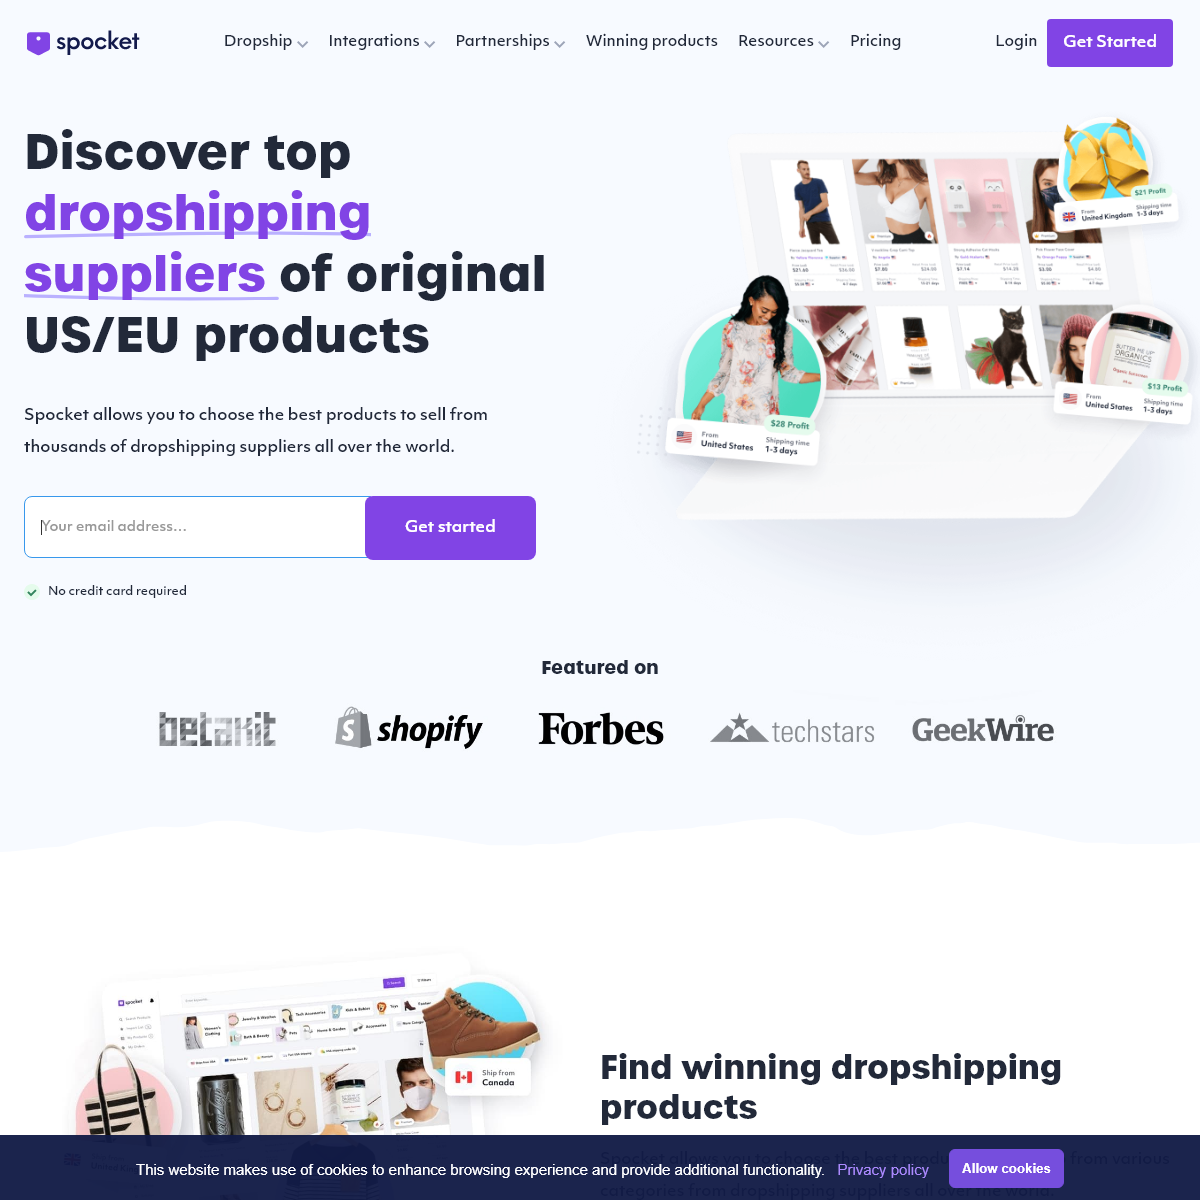 Best Dropshipping Suppliers for US + EU Products - Spocket